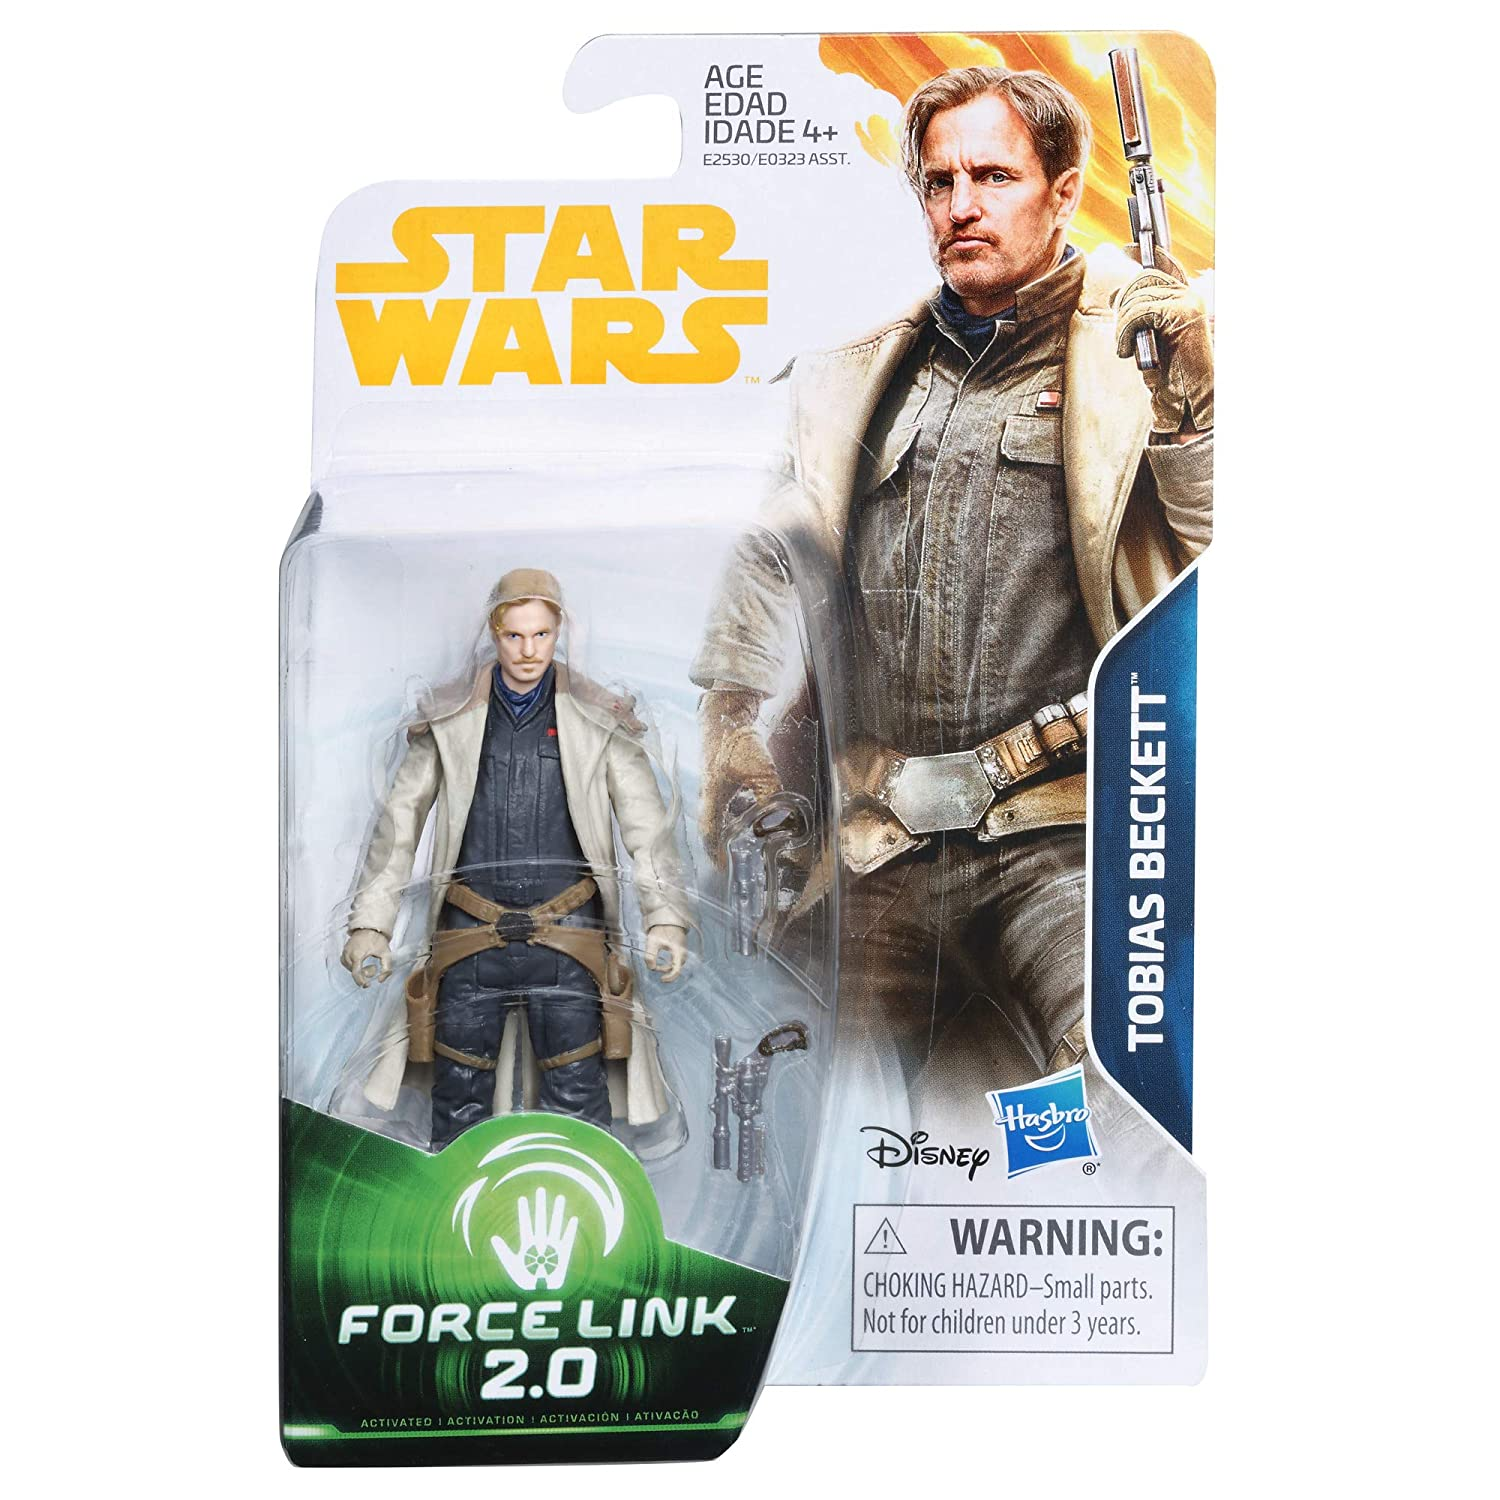 Star Wars E2530 Force Link 2.0 Tobias Beckett Figure Hasbro